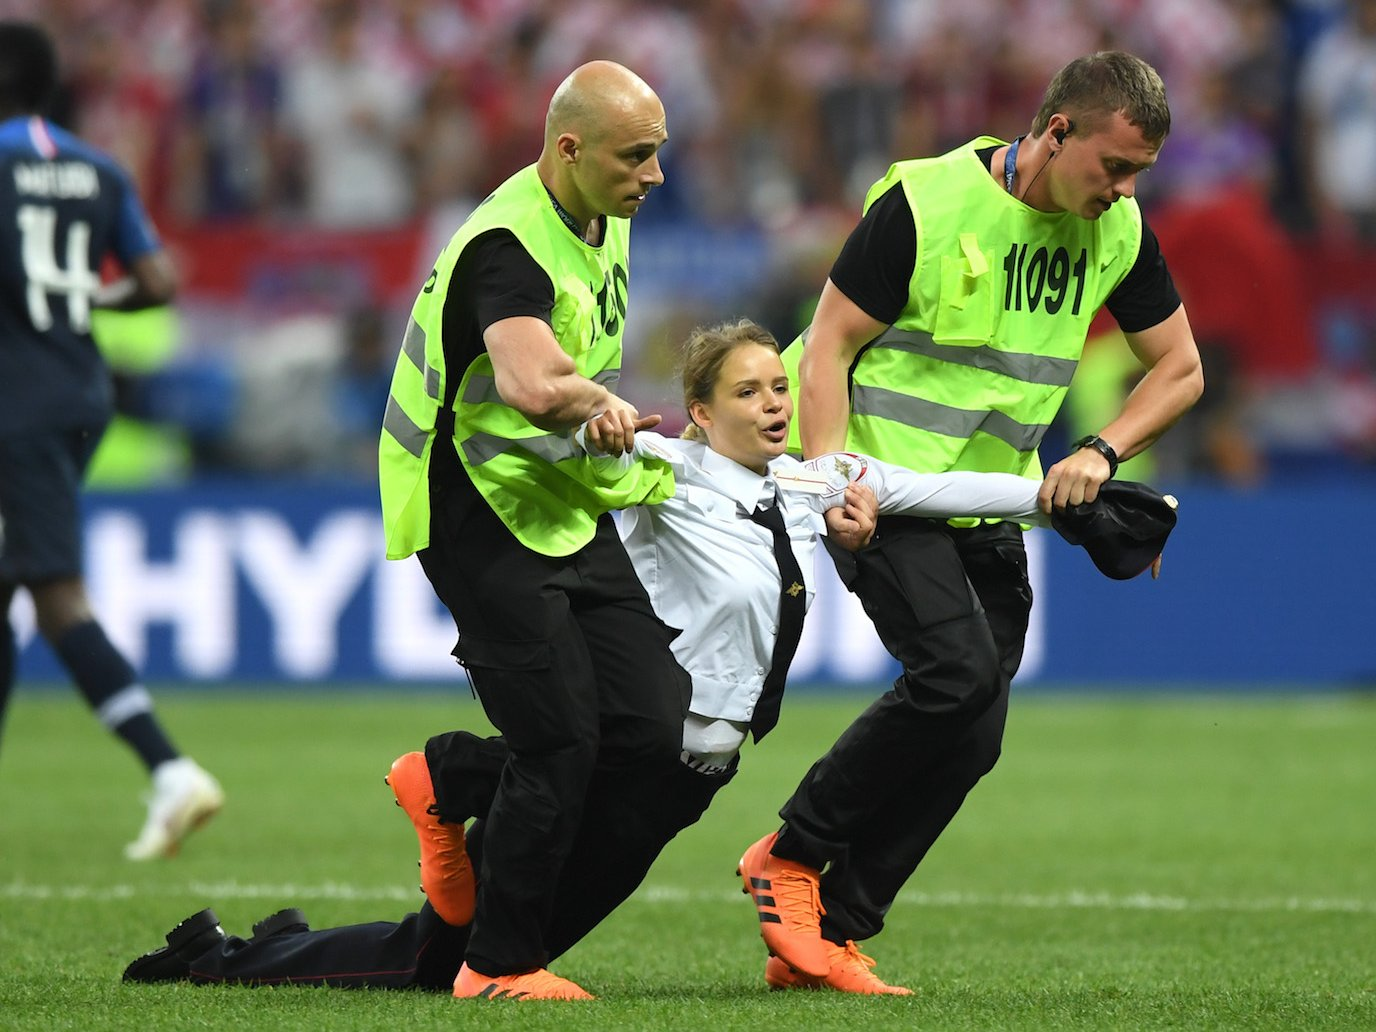 Pussy Riot on field dragged away World Cup 2018 Getty Images